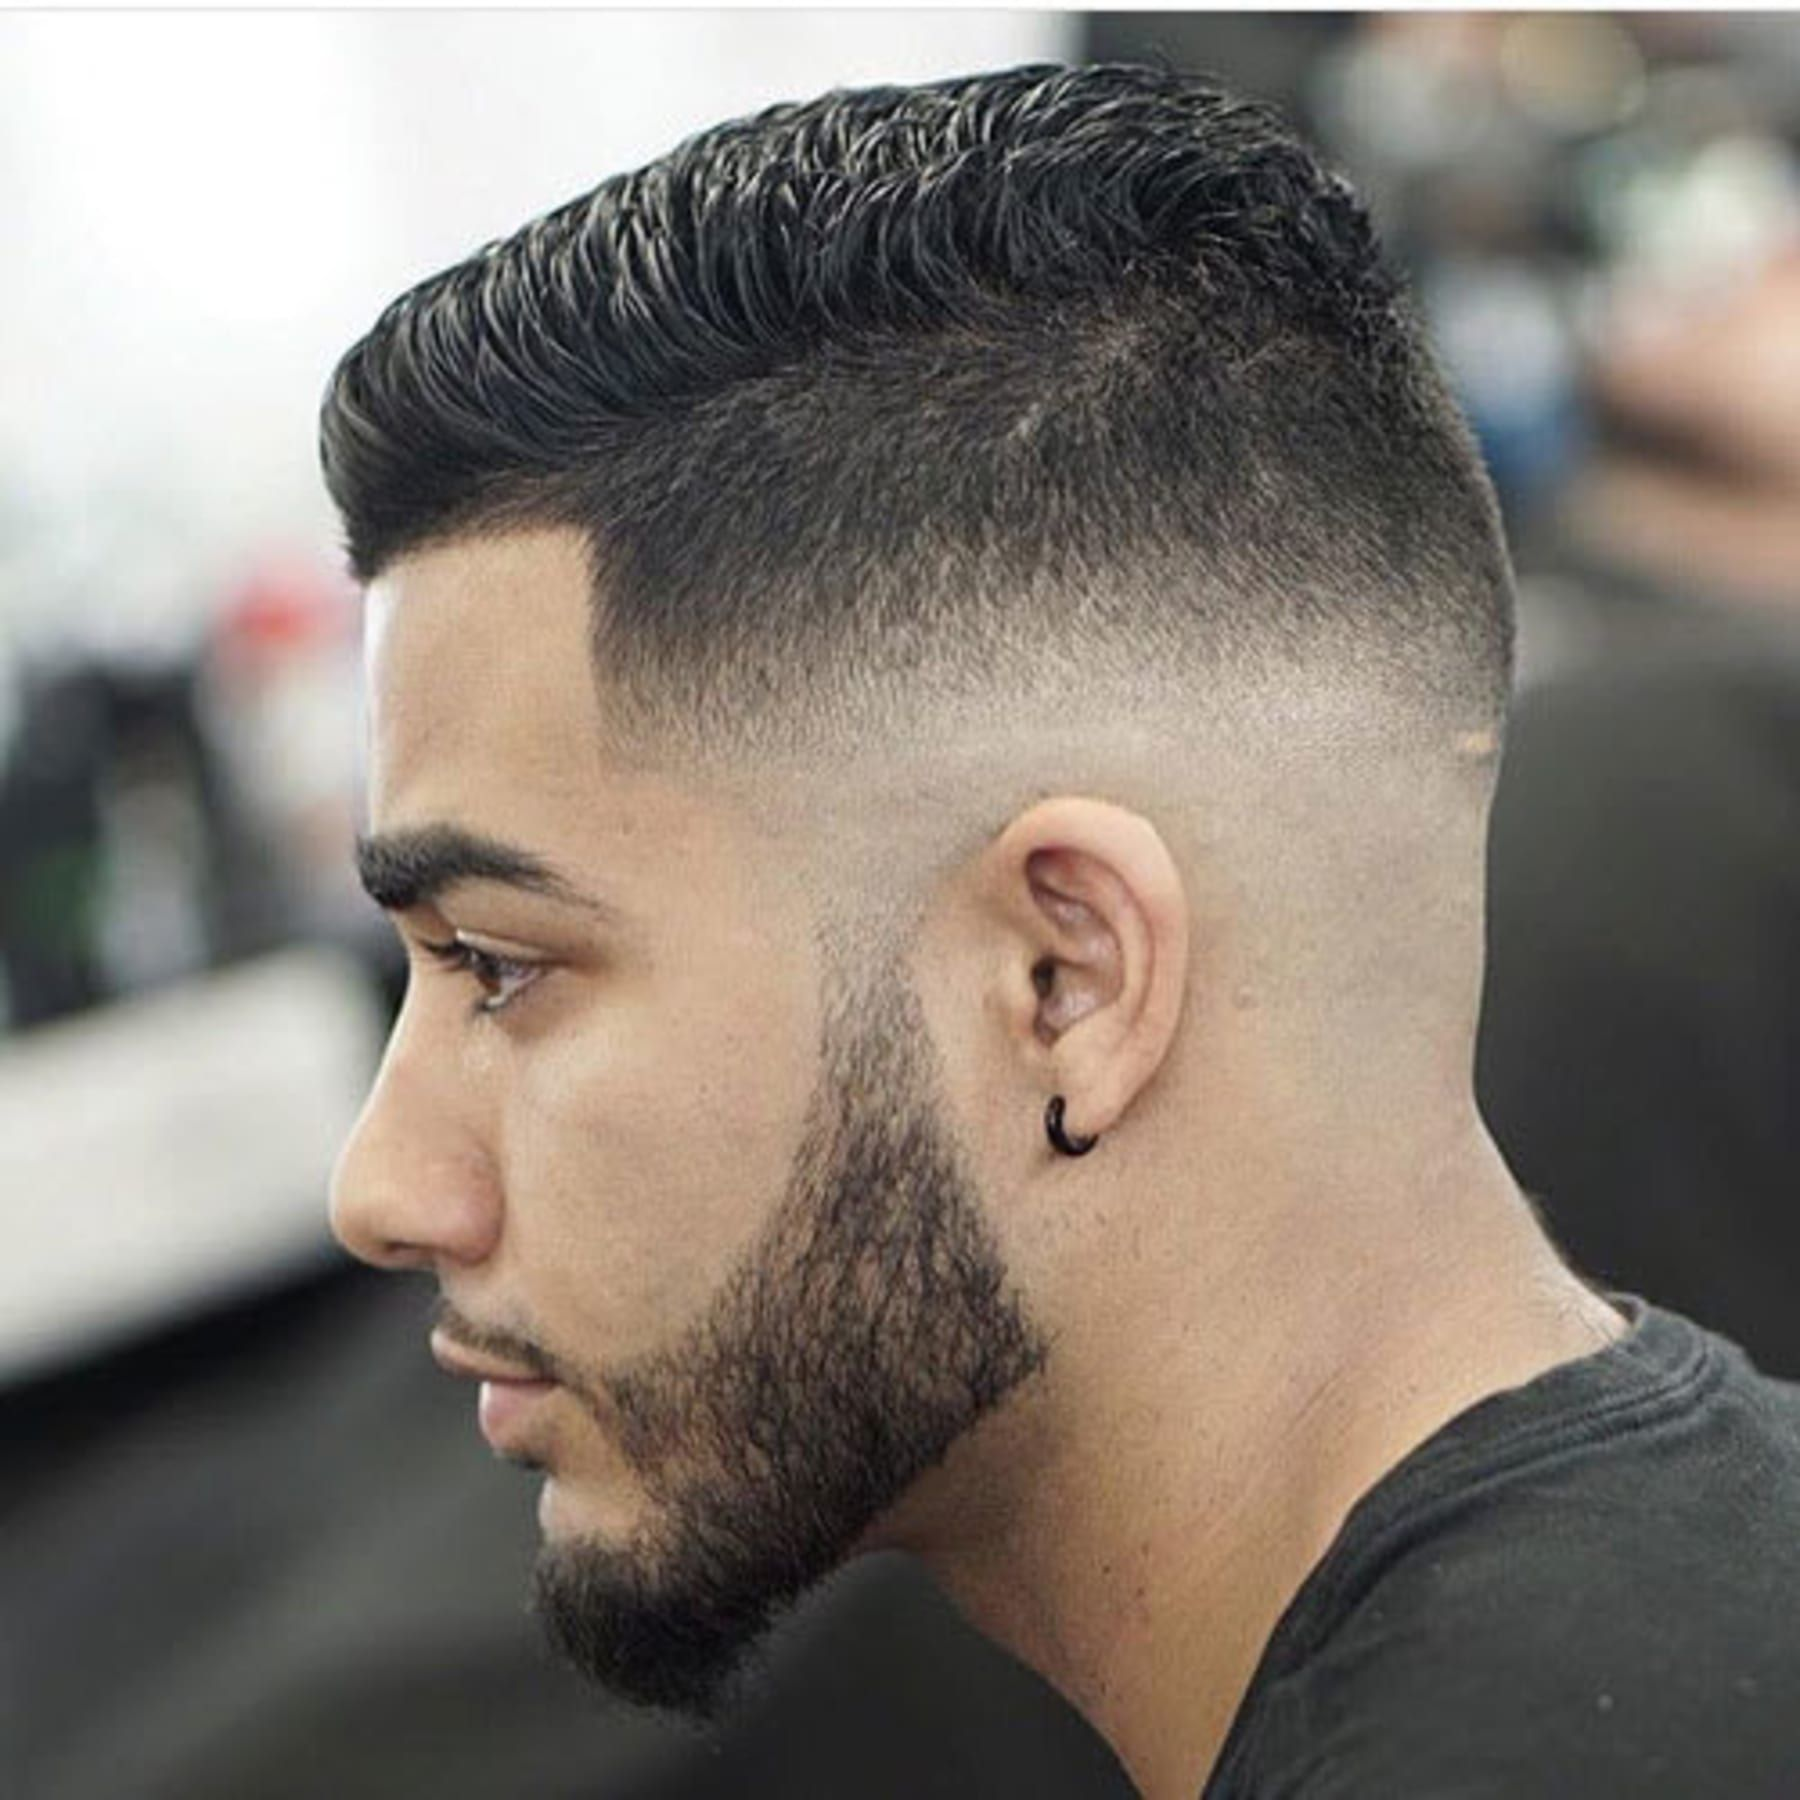 31 Best High Fade Haircut Styles Fade Haircut Fade Haircut